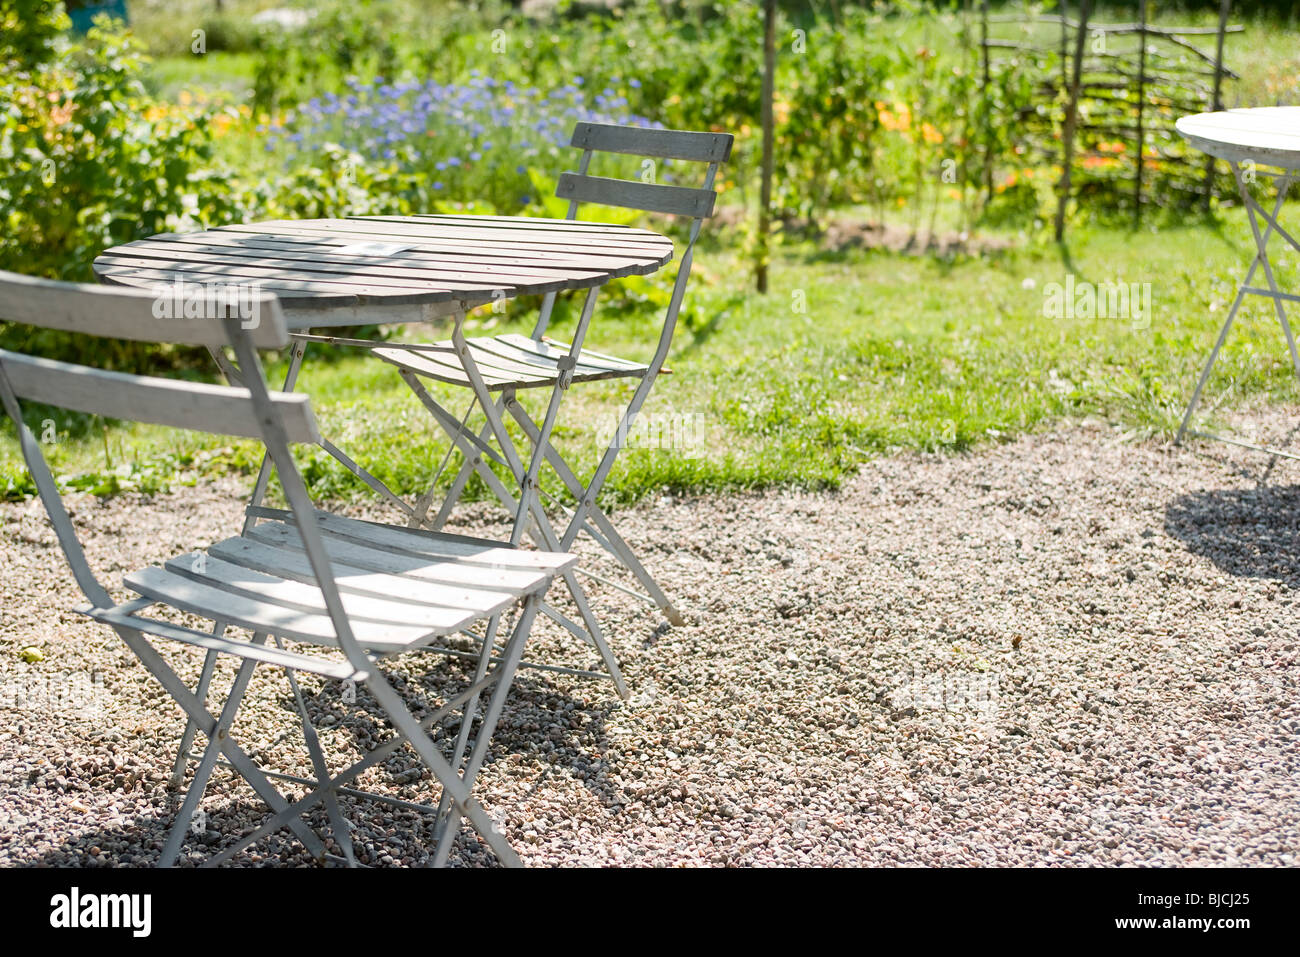 tisch und stuhl auf hinterhof terrasse stockfoto bild 28551773 alamy. Black Bedroom Furniture Sets. Home Design Ideas